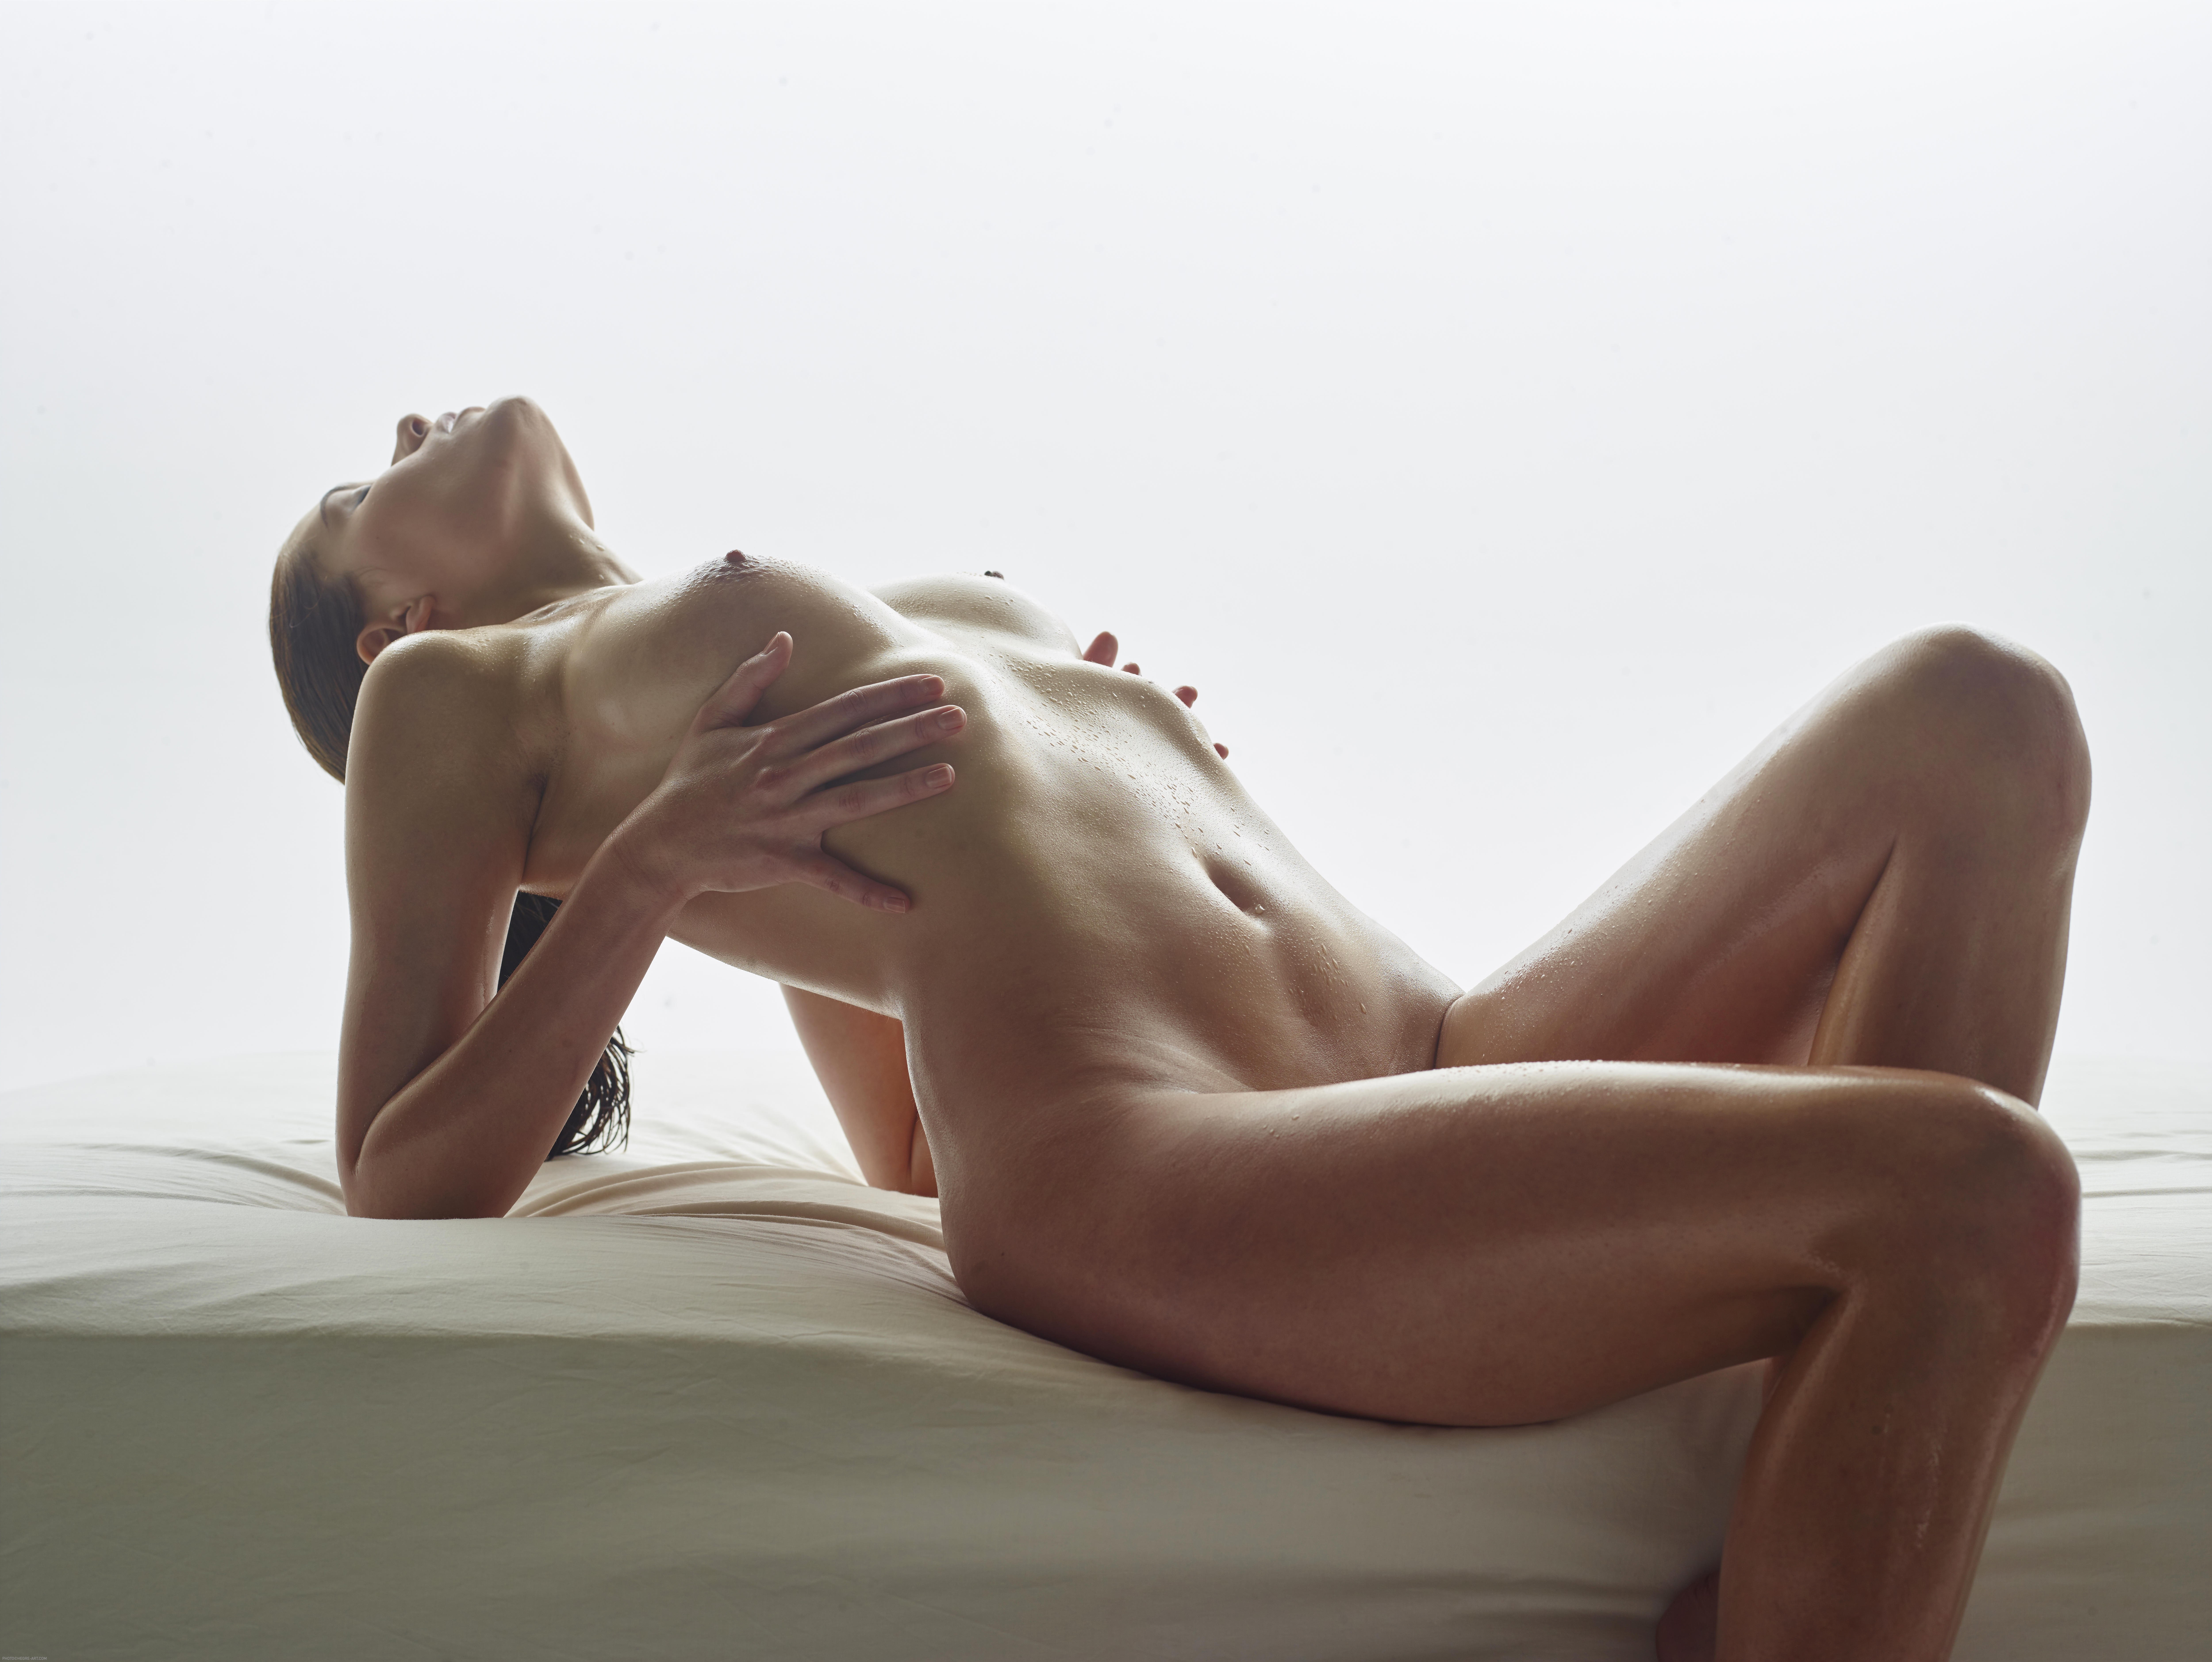 Wallpaper Adult Model, Best Quality, Hi-Q, Kloe, Naked, Nude, Sexy Girl -5603